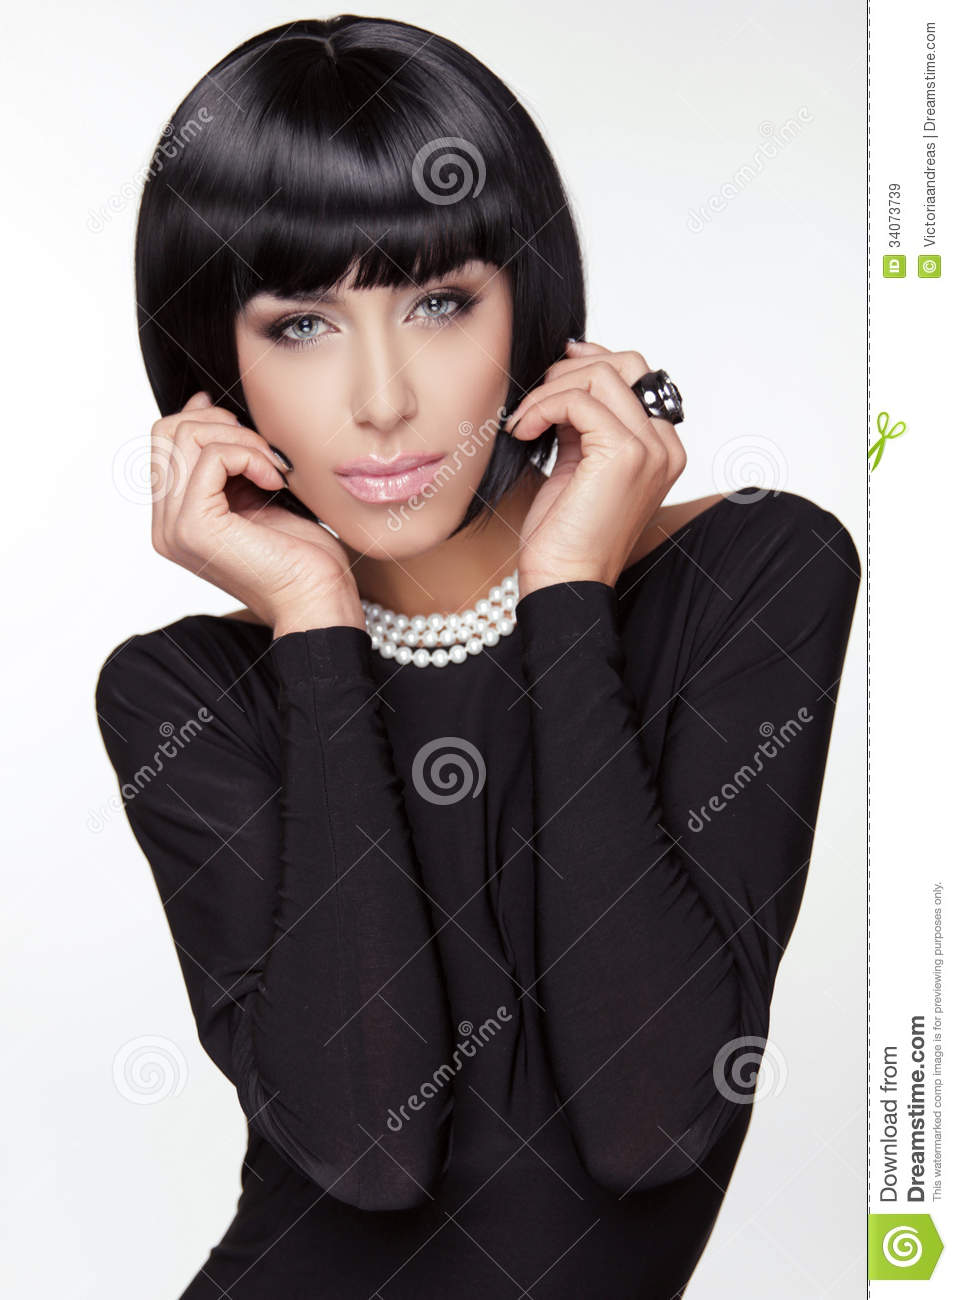 Vogue Style Fashion Beauty Woman Royalty Free Stock Images Image 34073739